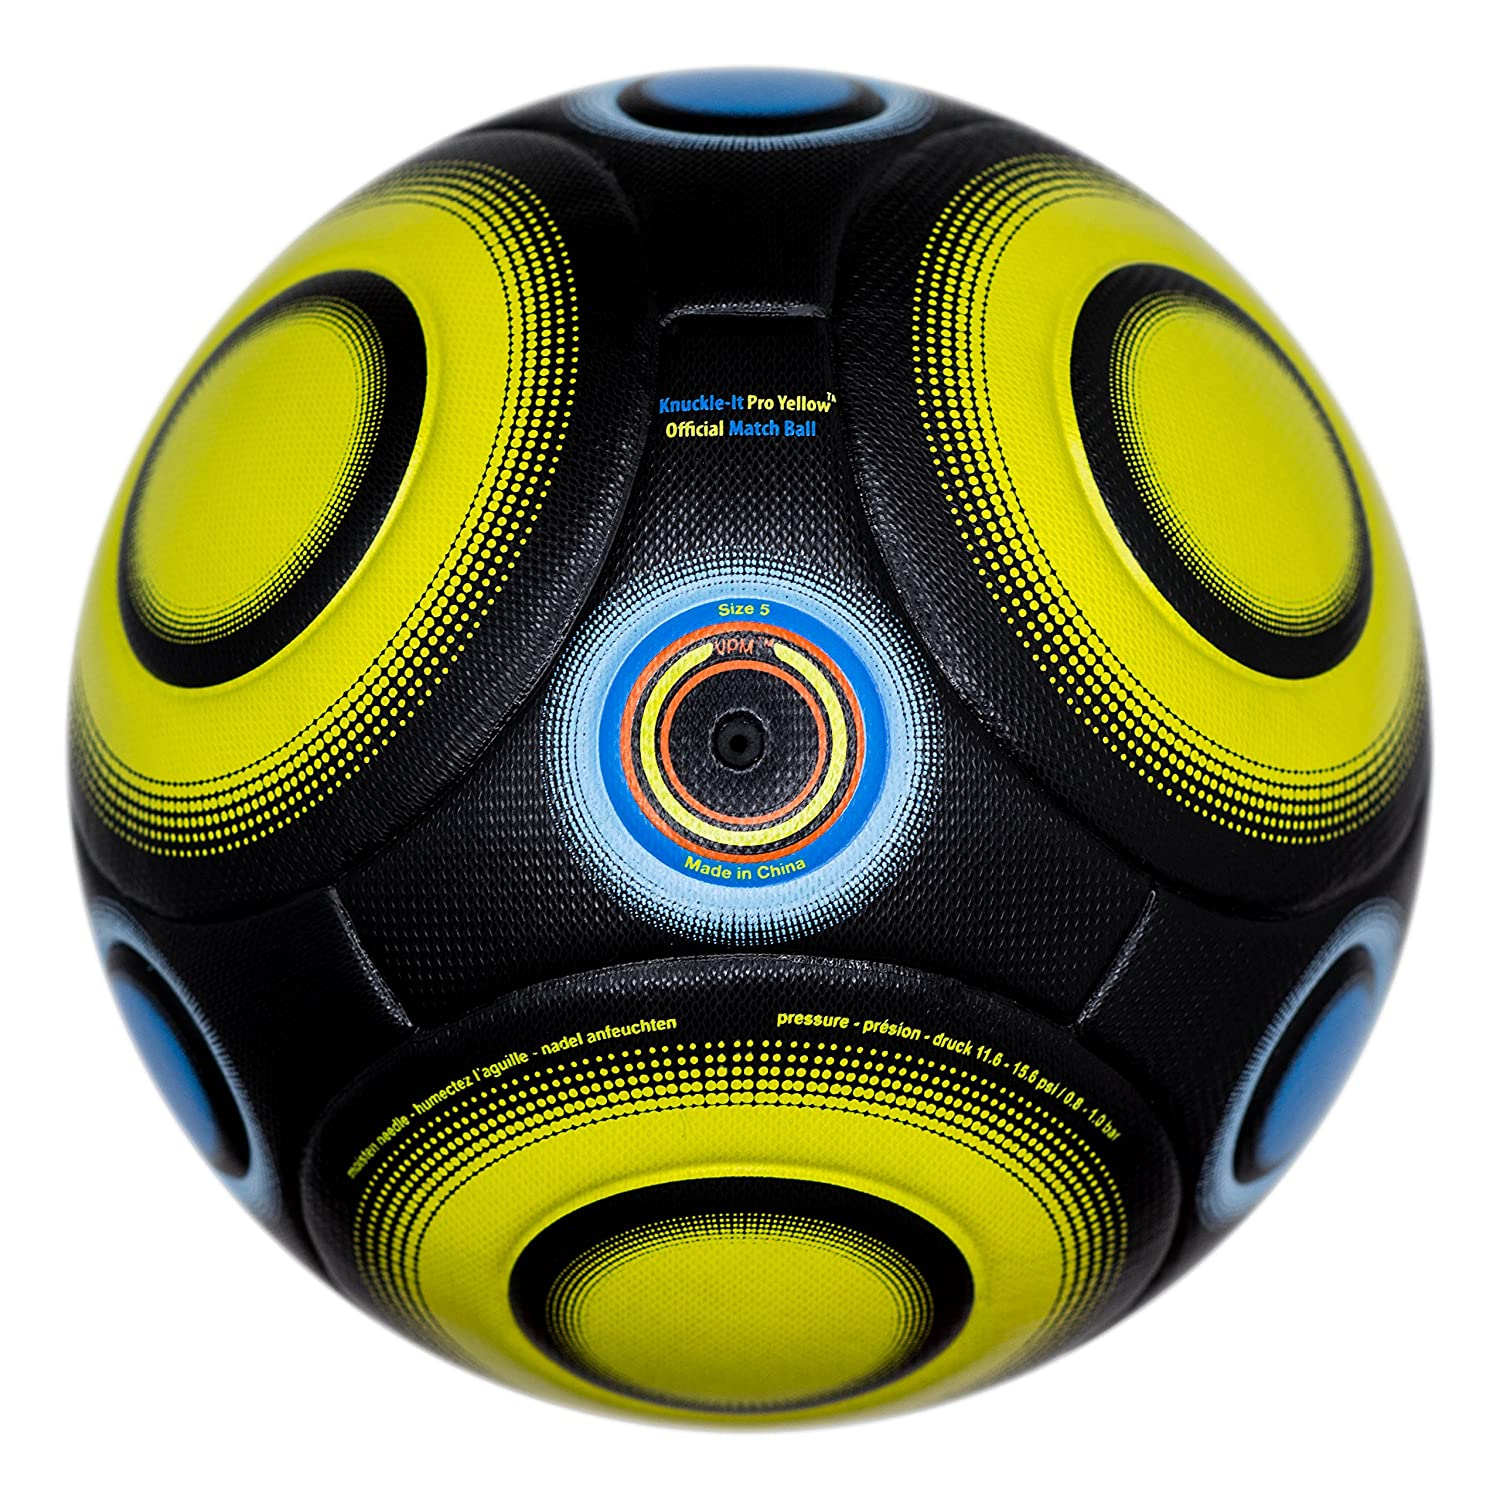 bend-itサッカー、knuckle-it Pro、サッカーボール、Official Match Ball with VPM and VRCテクノロジー B01BLP47PQ 5|Black/Yellow (Knuckle-It Pro Yellow) Black/Yellow (Knuckle-It Pro Yellow) 5